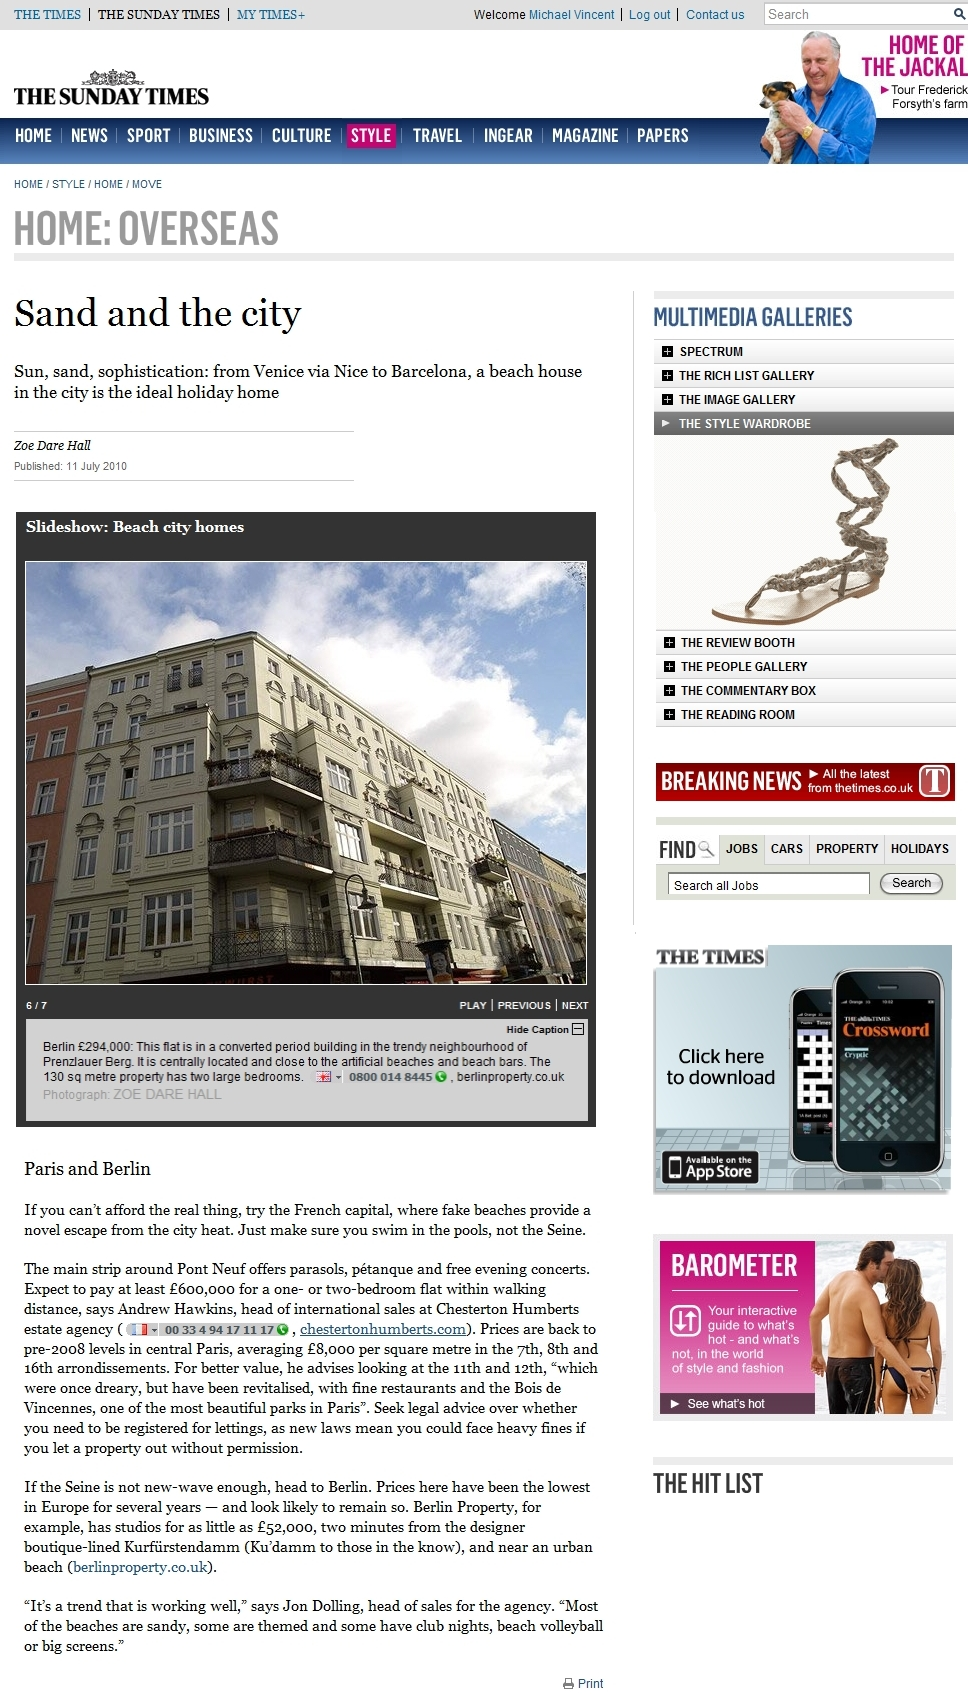 BerlinProperty.co.uk - As Seen In The Sunday Times